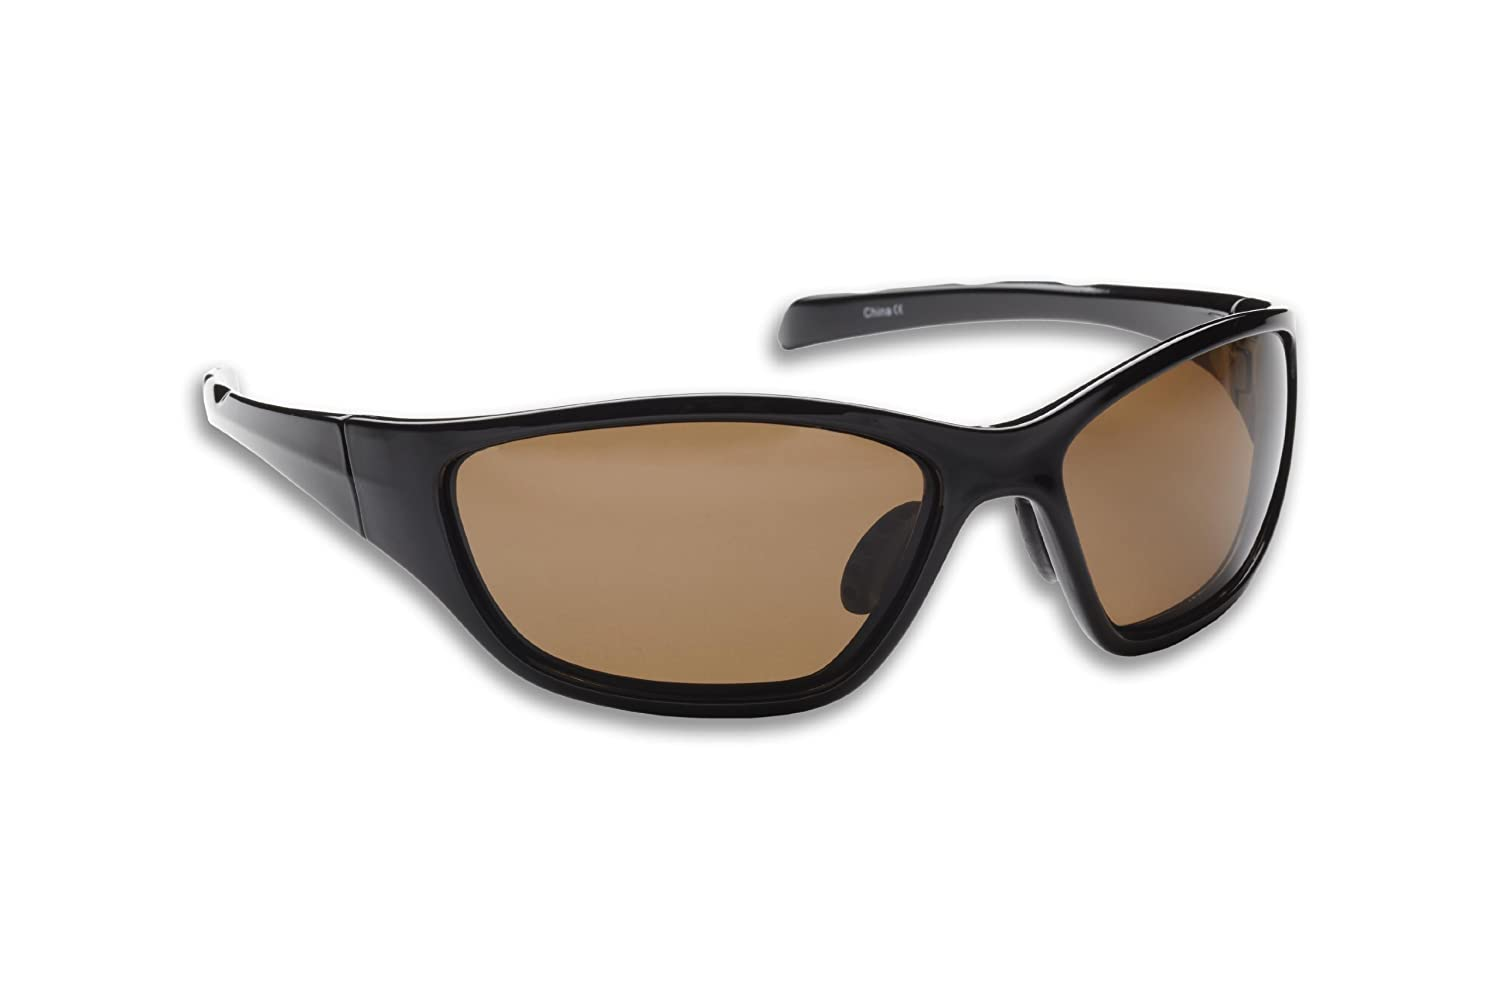 Amazon.com: Pescador Eyewear Wave Original Sol Polarizadas ...